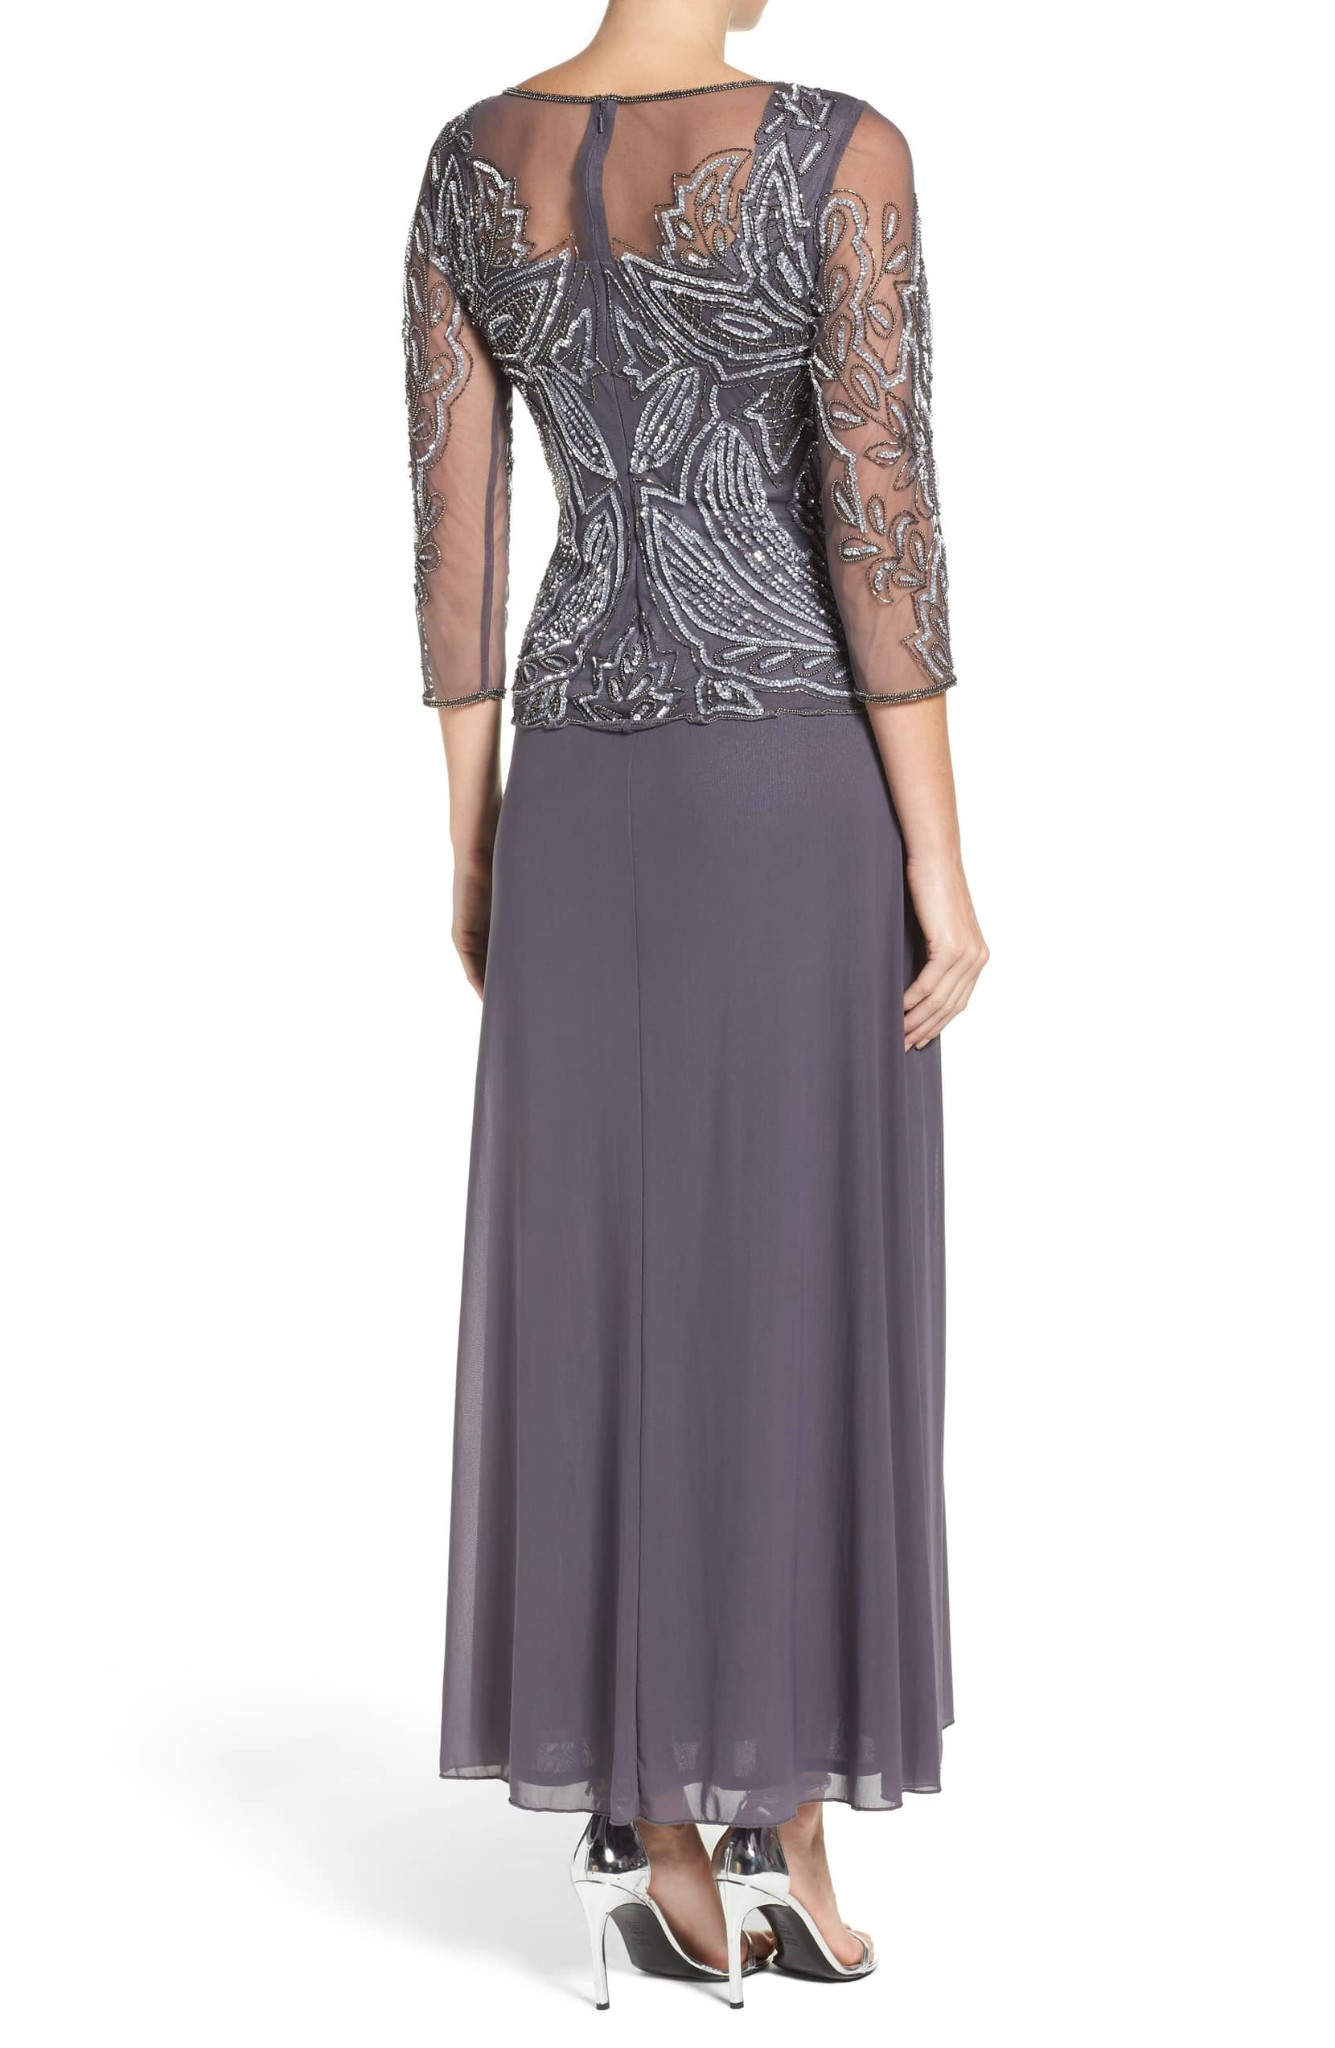 7bfcce57d6b Details about Pisarro Nights Embellished Mesh Gown Sz 4 slate